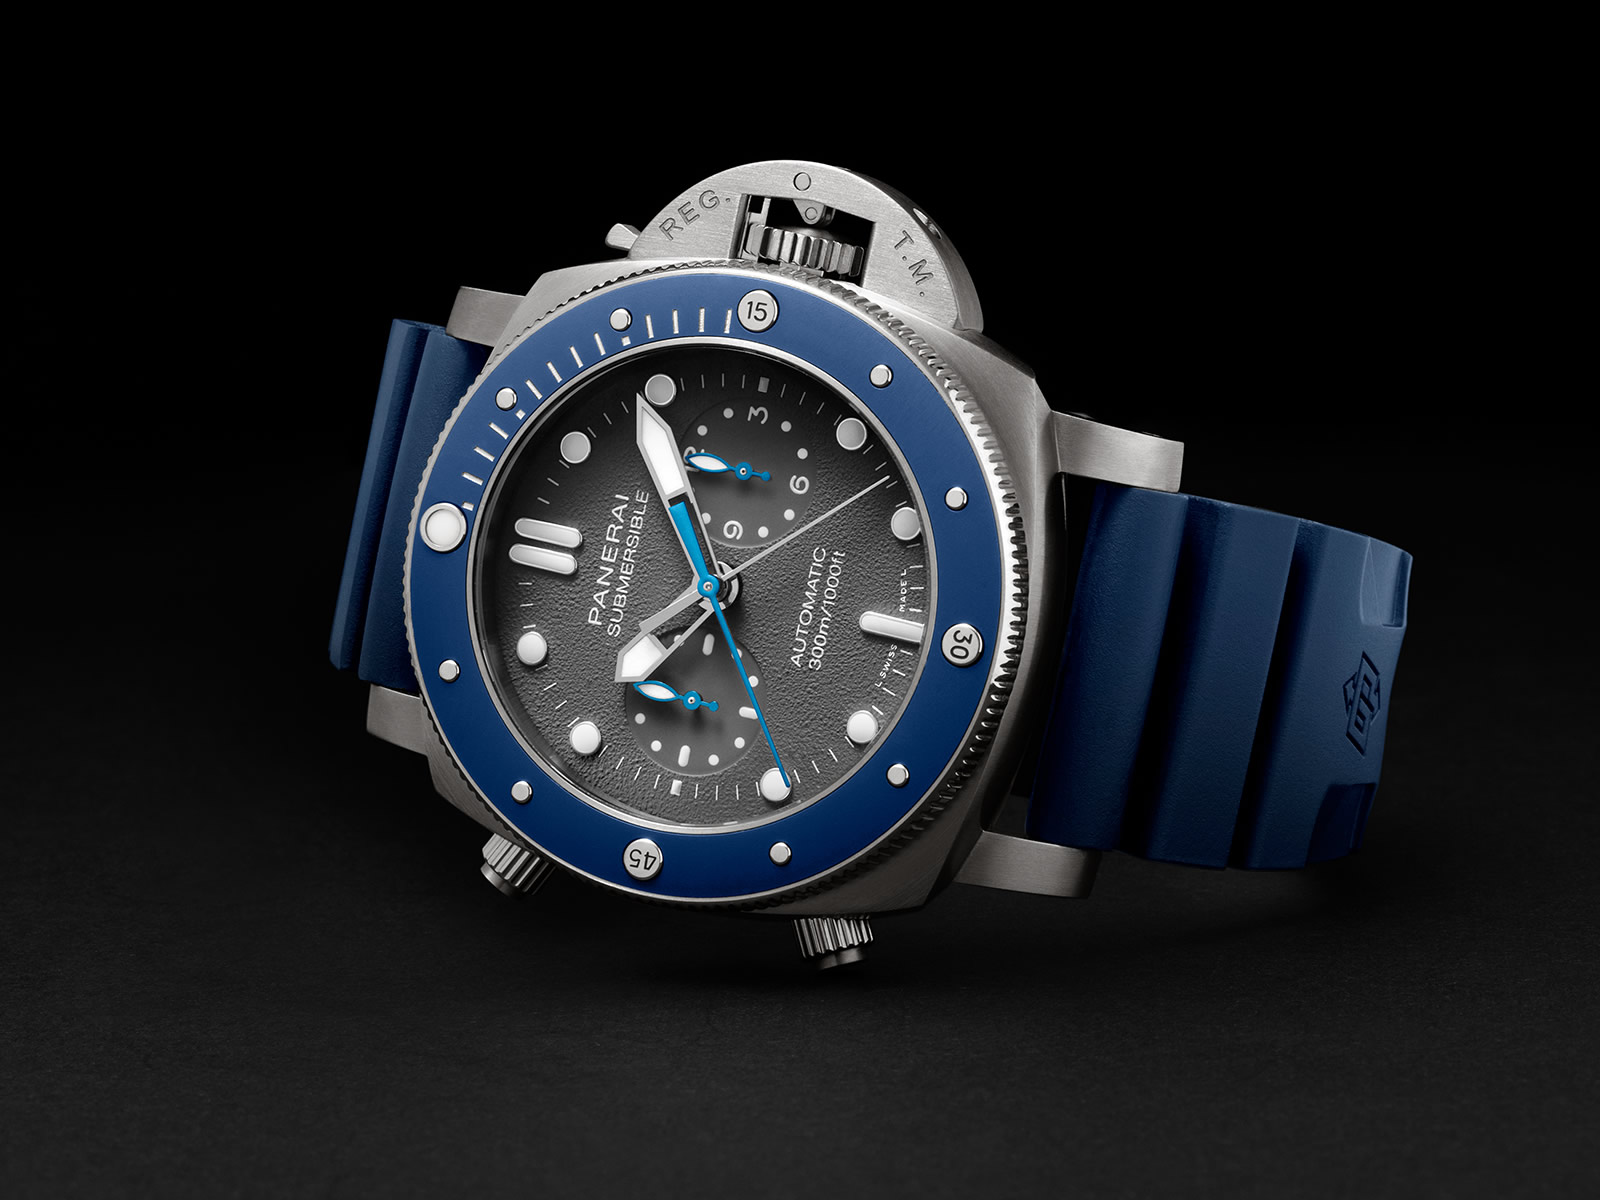 pam00982-officine-panerai-submersible-chrono-guillaume-nery-edition-1-.jpg